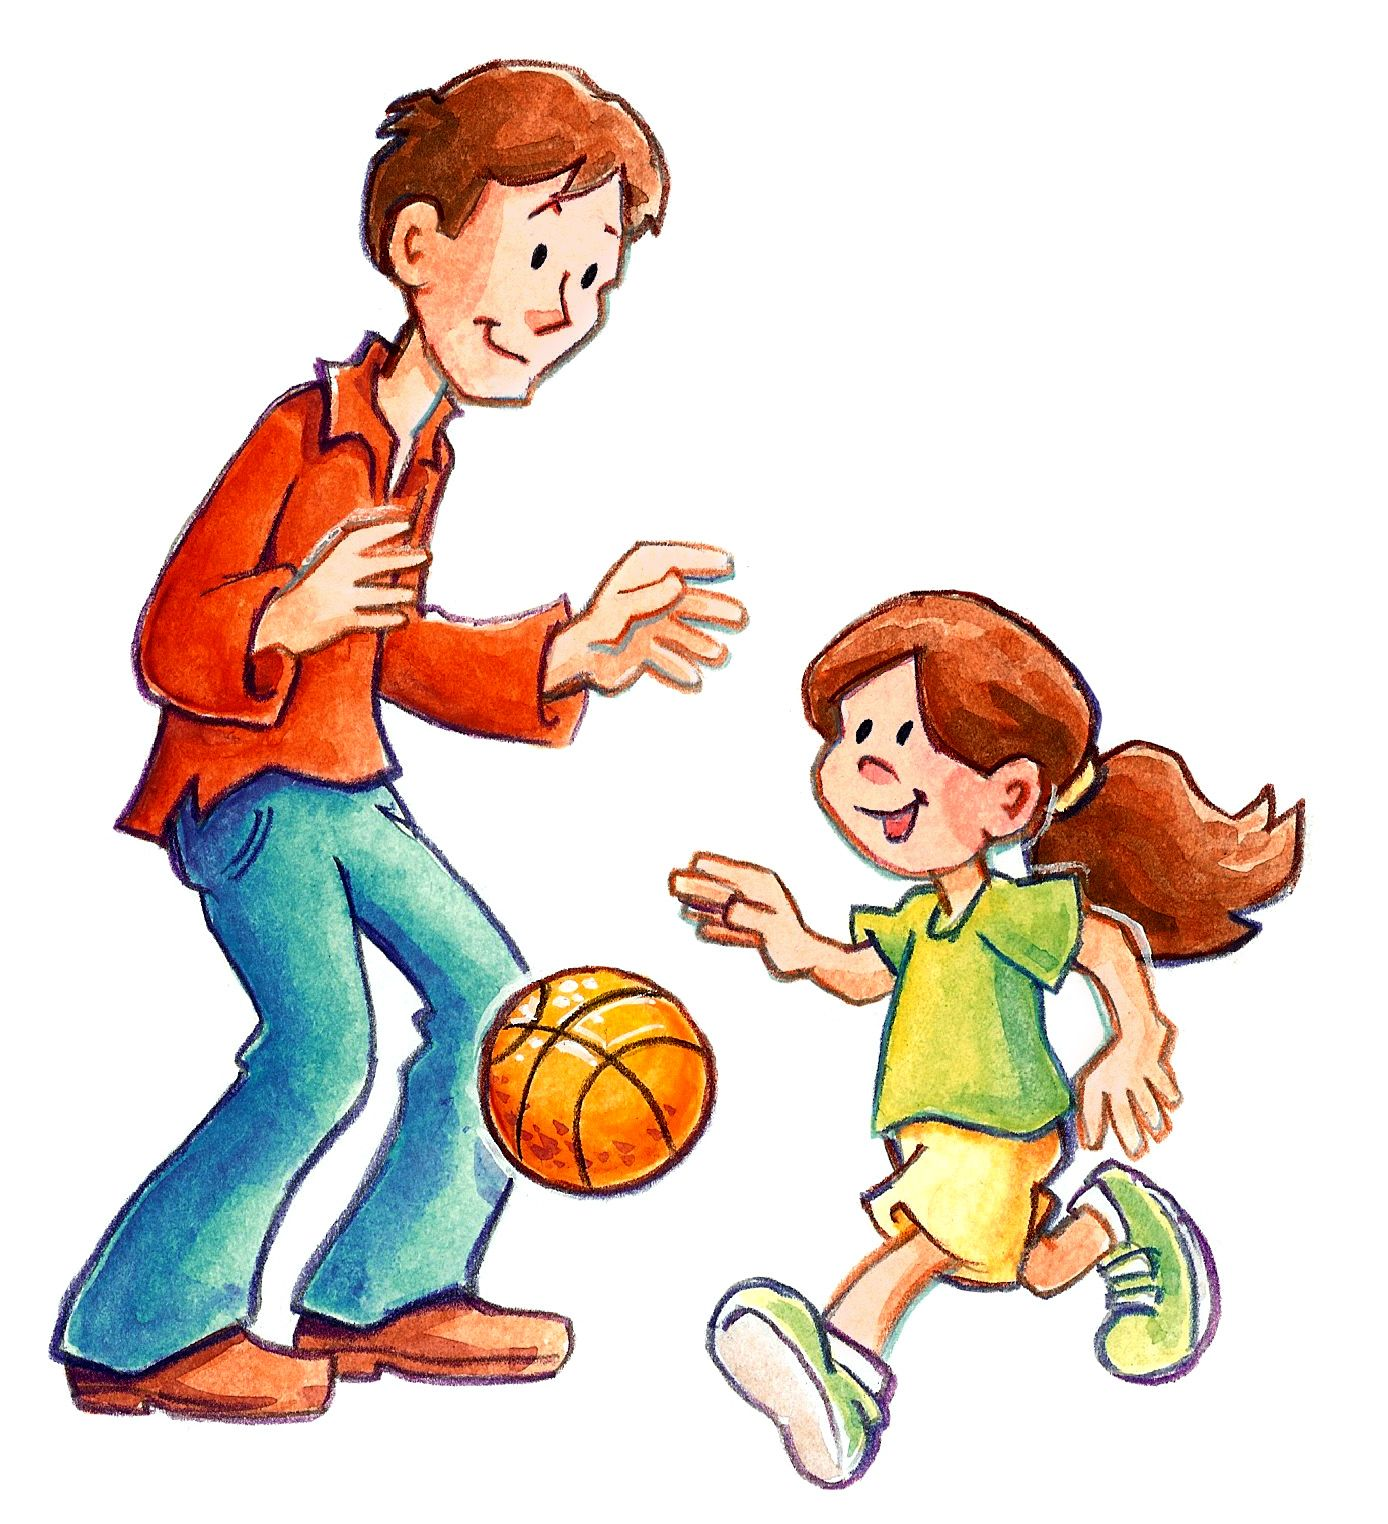 art sam ples father daughter basketball dxrwgp clipart jpg 1388 rh pinterest com parents and daughter clipart father and daughter fishing clipart